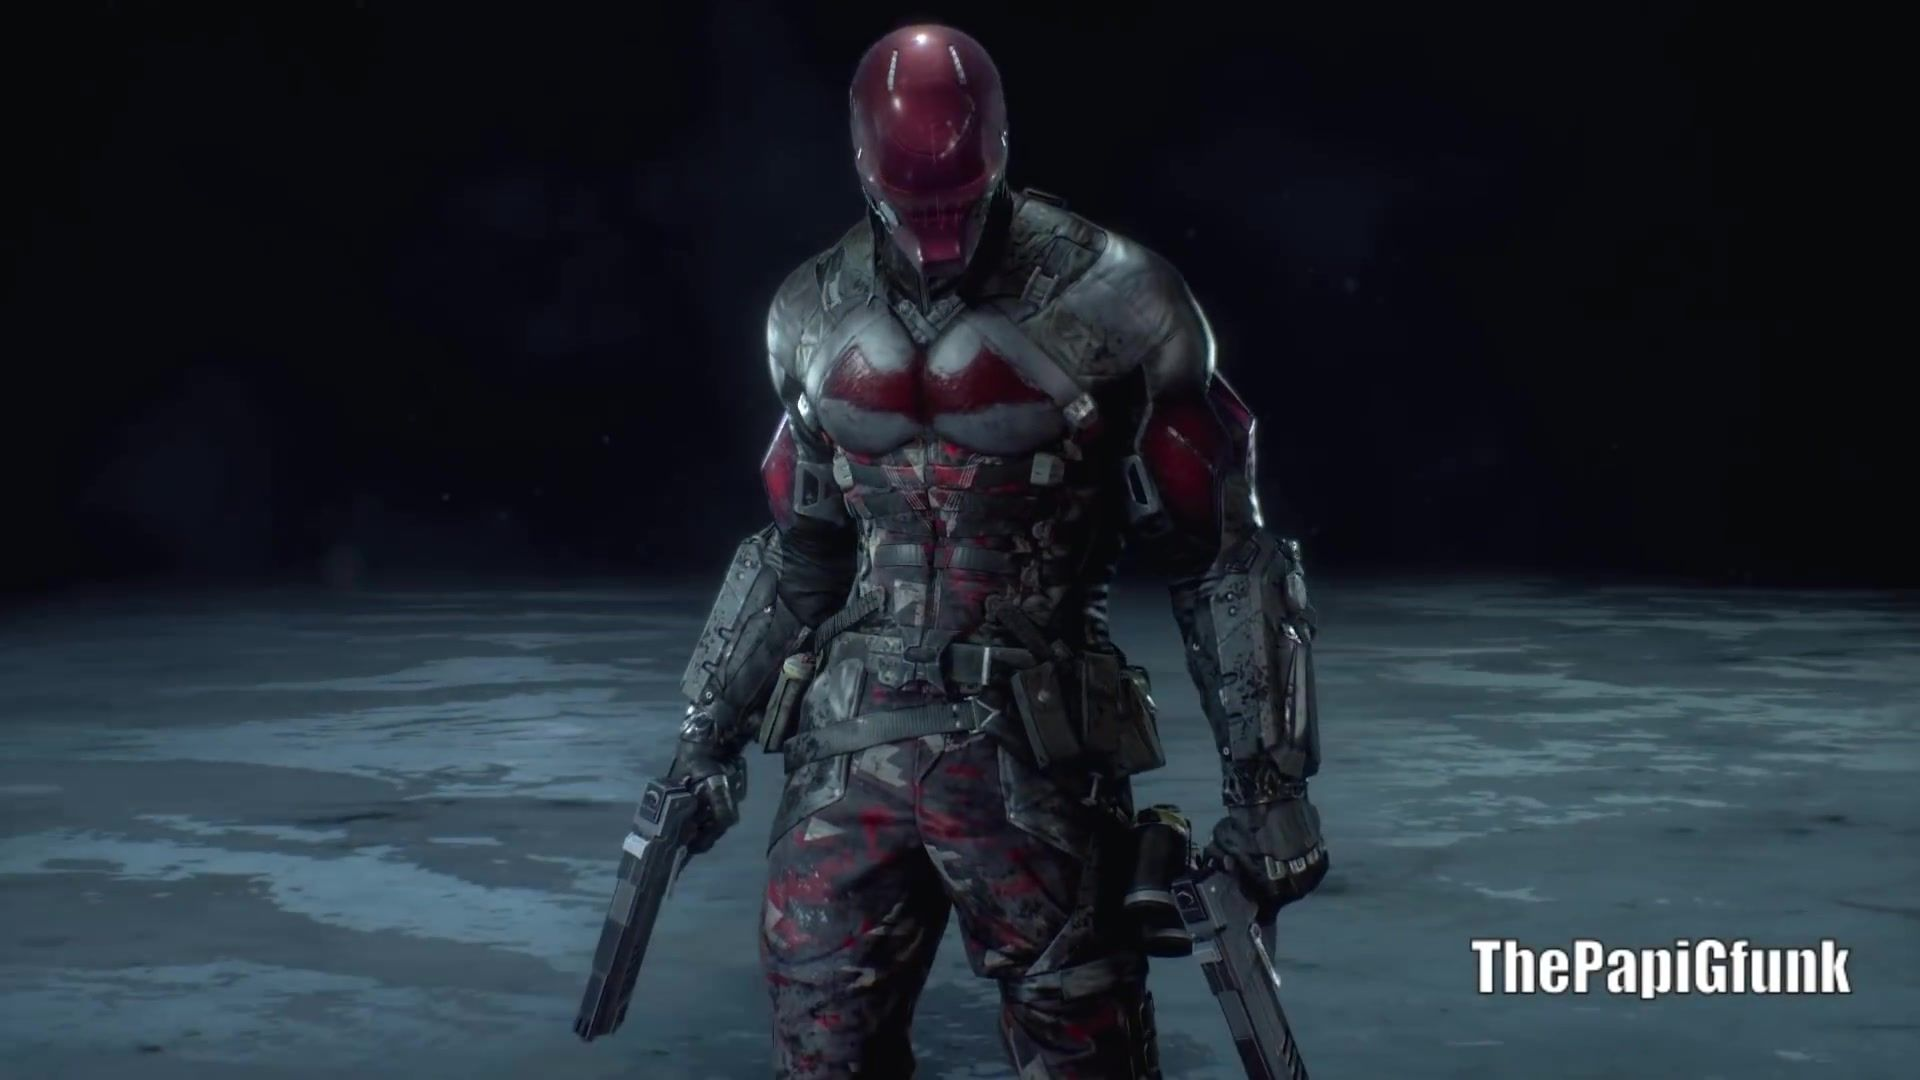 arkham knight red hood - Google Search | charecter ...